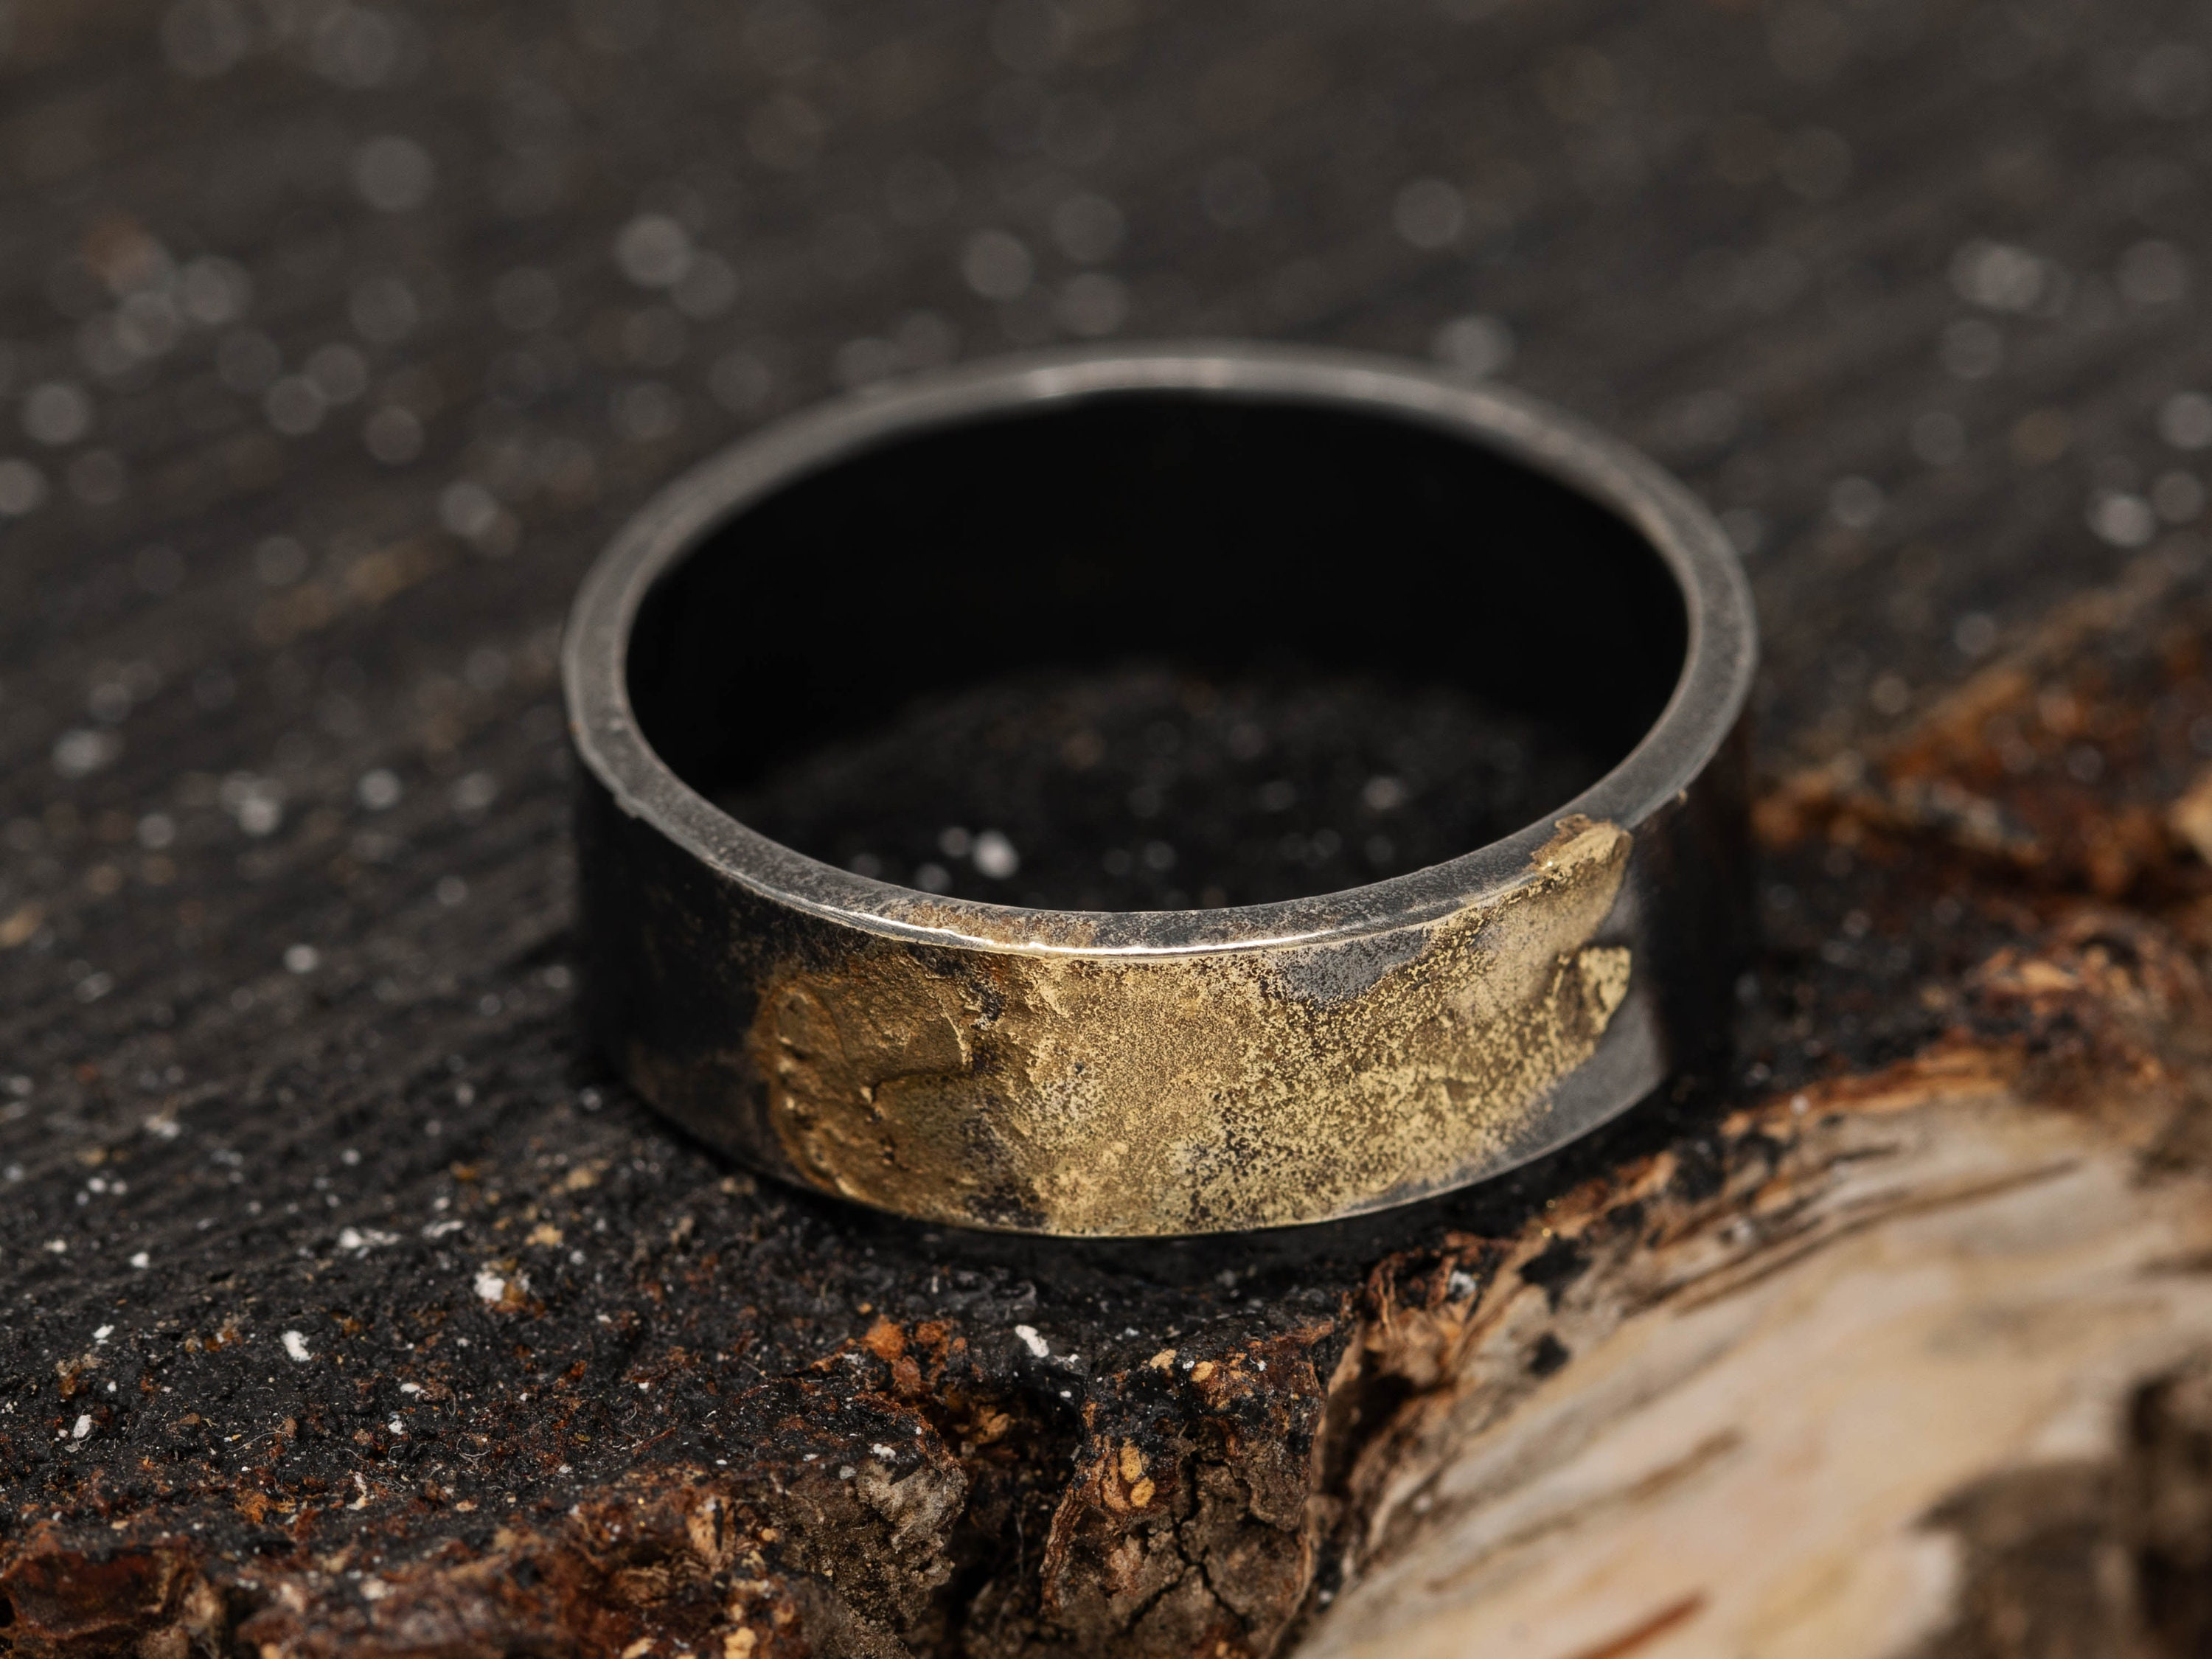 6MM Sterling Silver/&24K Gold Keum Boo Rustic Ring|Mens Rustic Band|Organic Wedding Ring|Unisex Ring|Rustic Ring|Gift for Him|Gift for Her